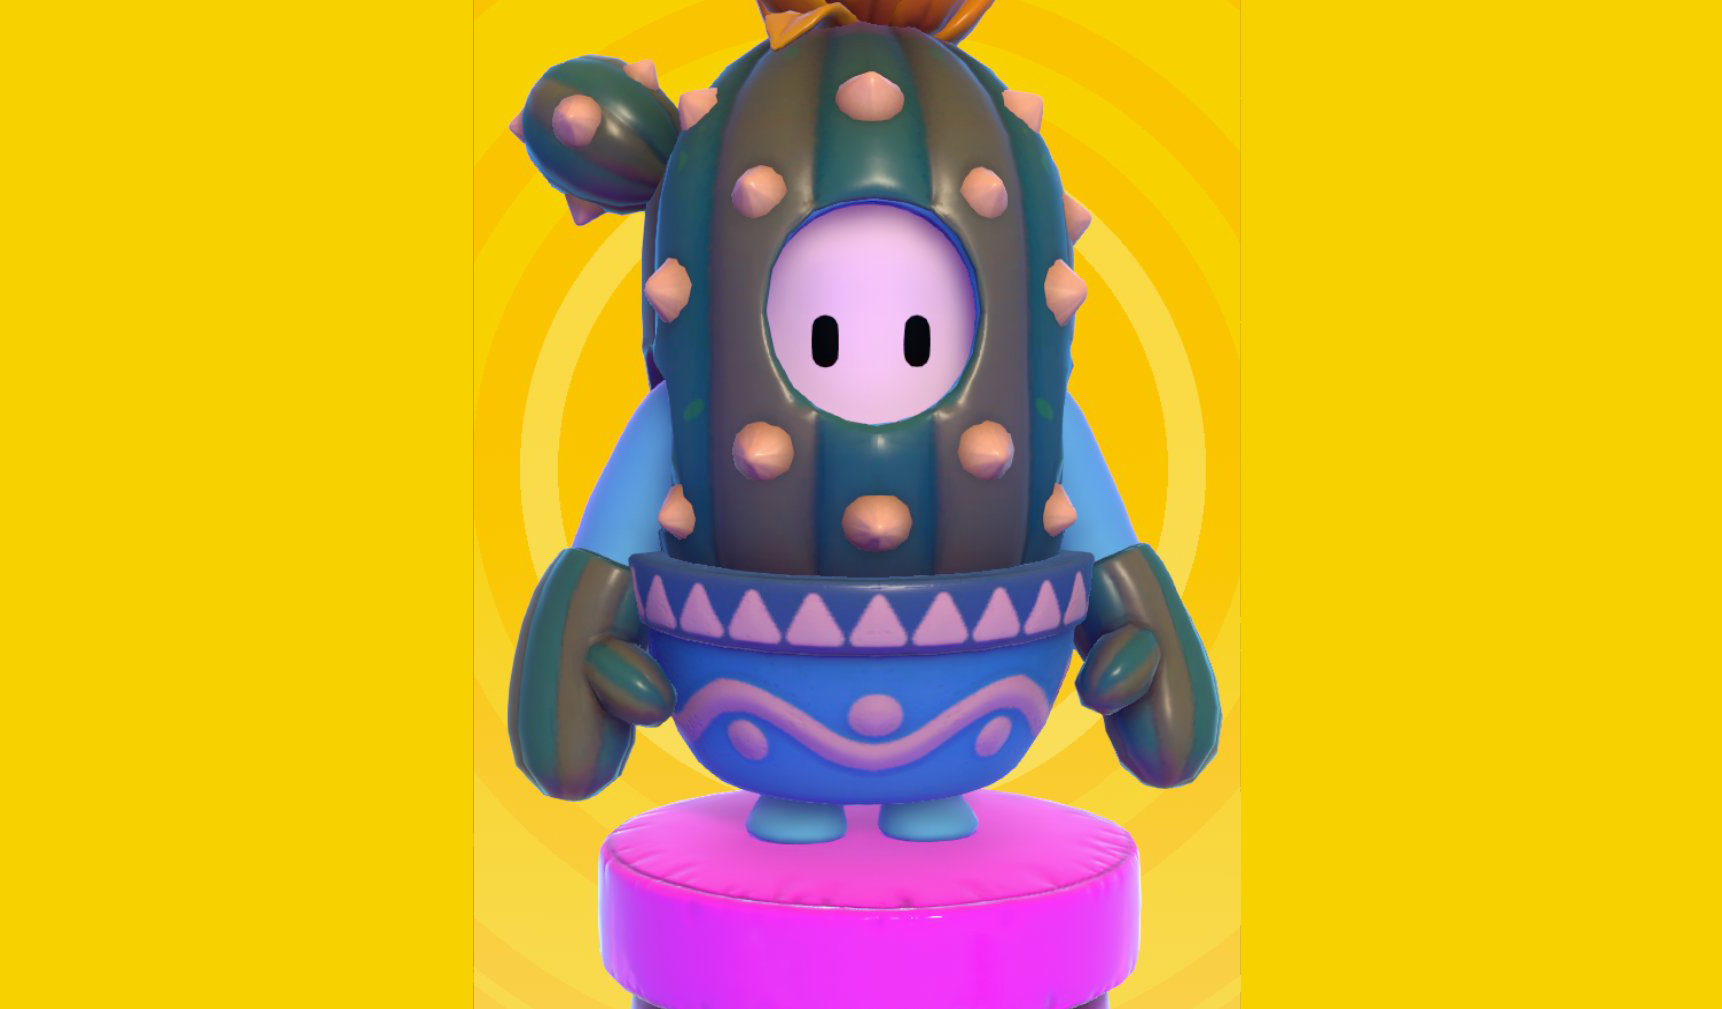 A Fall Guy bean decked out in the legendary skin Prickles, which resembles a potted cactus.